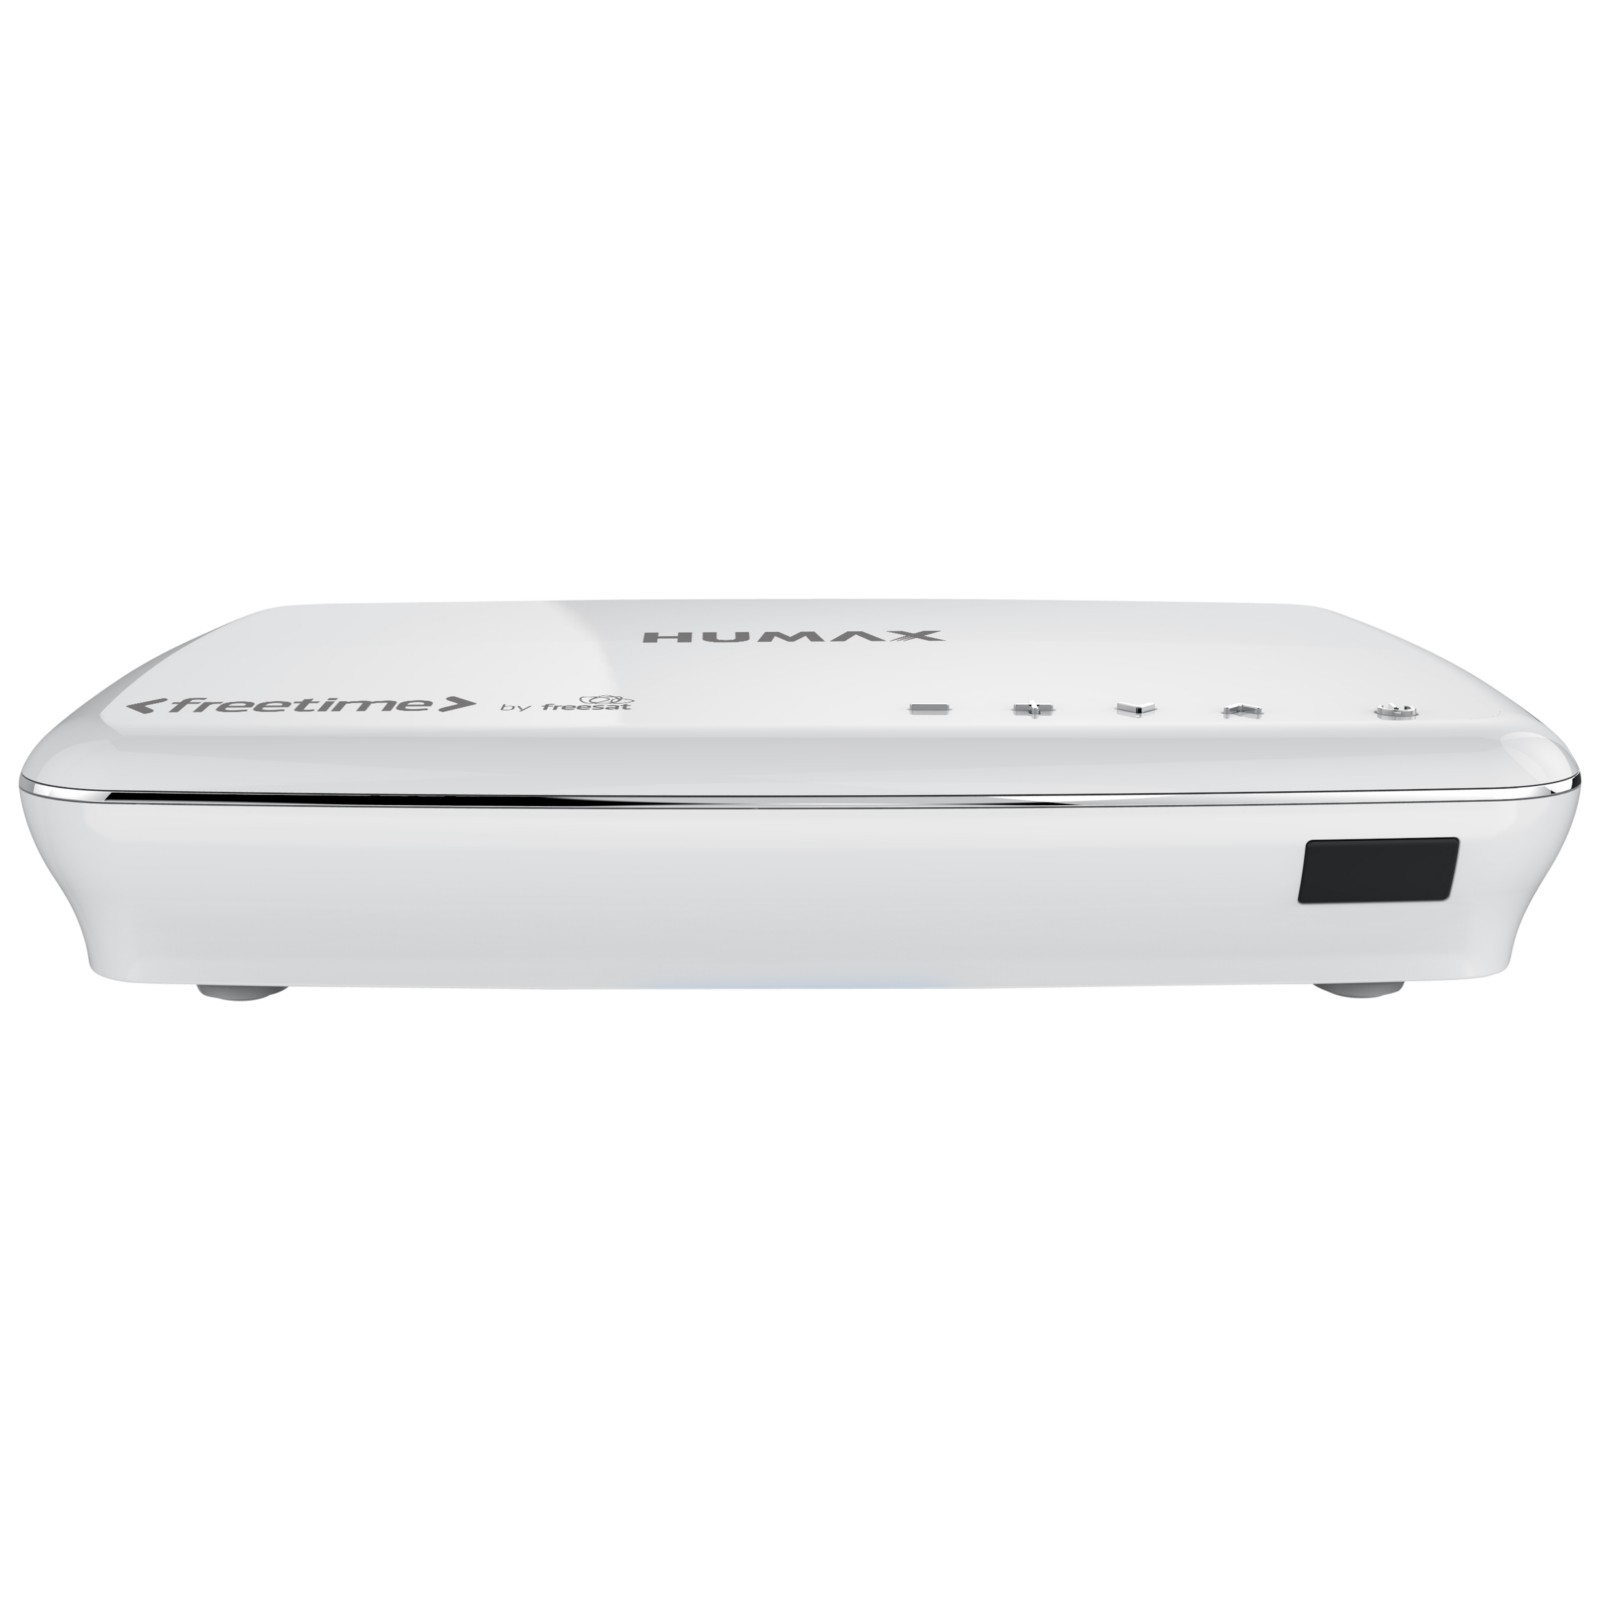 Humax HDR-1100S Smart 1TB Freesat+ with Freetime HD Digital TV Recorder White